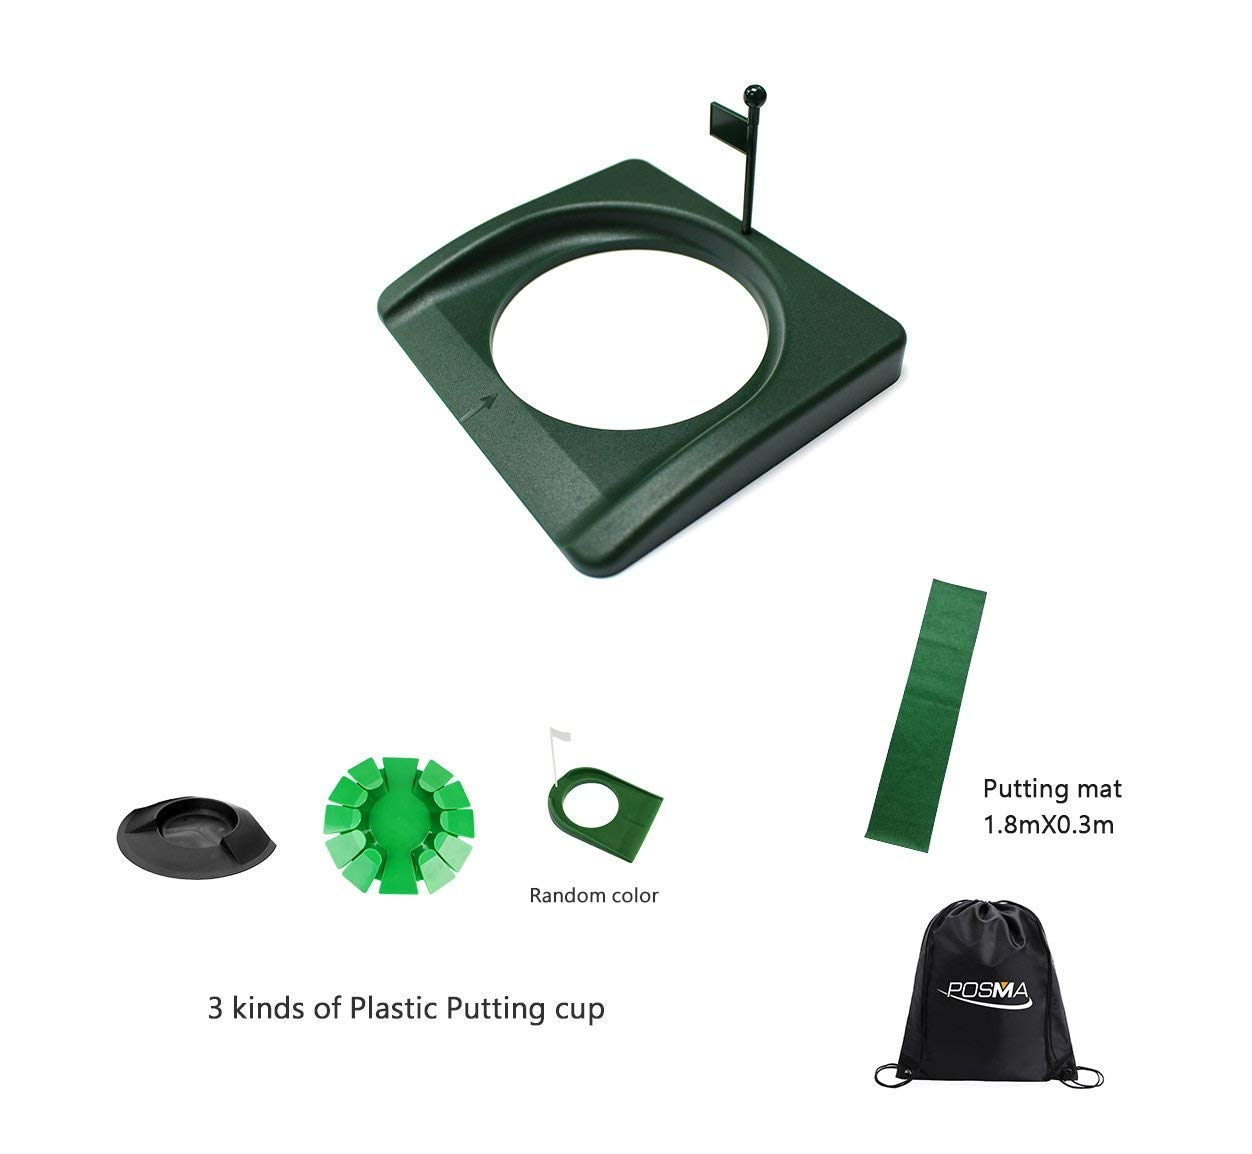 POSMA PHS013 Plastic Practice Putting Cup Golf Hole Training Aid Bundle Set with Putting Cup + Putting Mat + Carry Bag